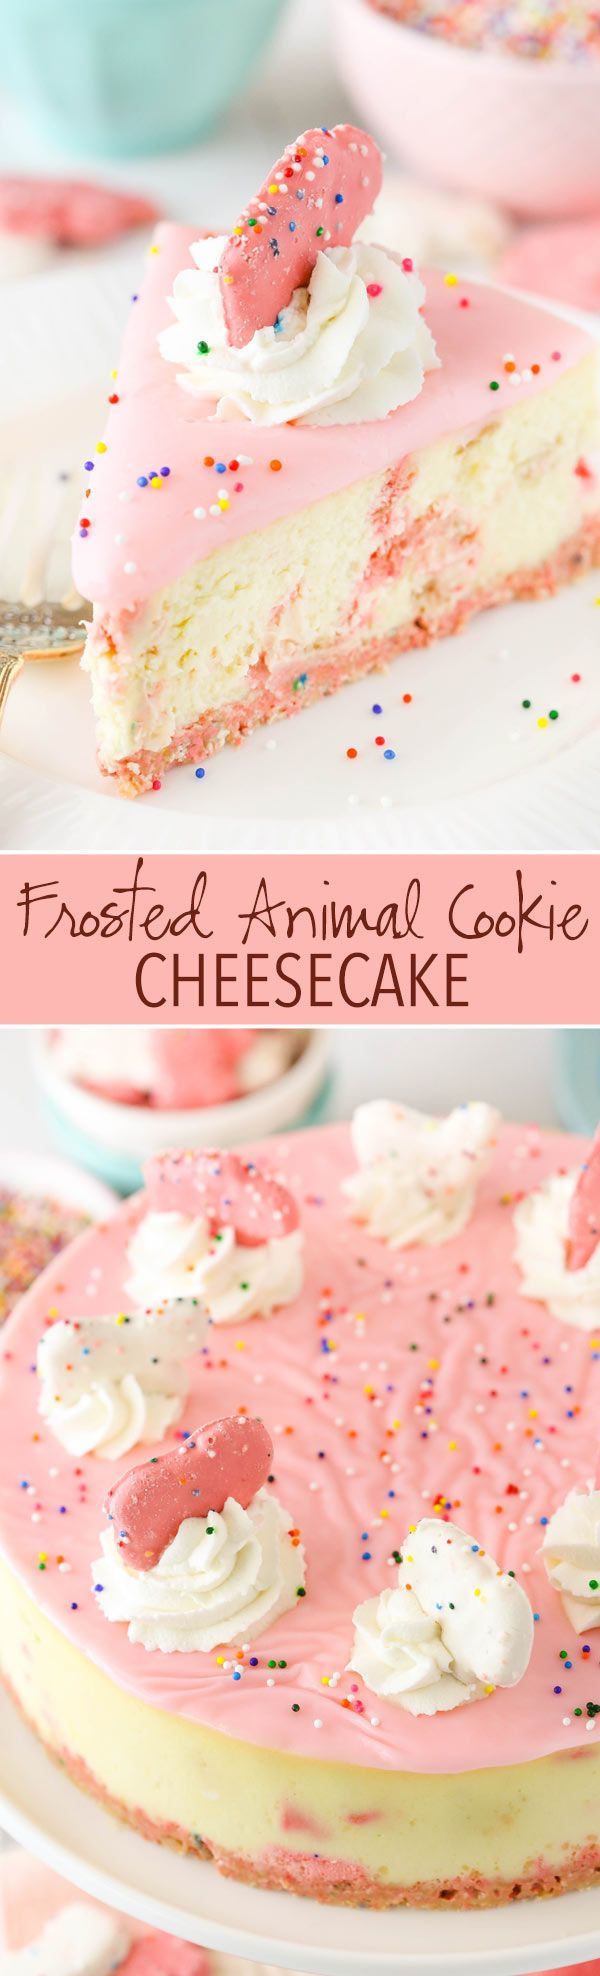 Frosted Animal Cookie Cheesecake - love the cookies!